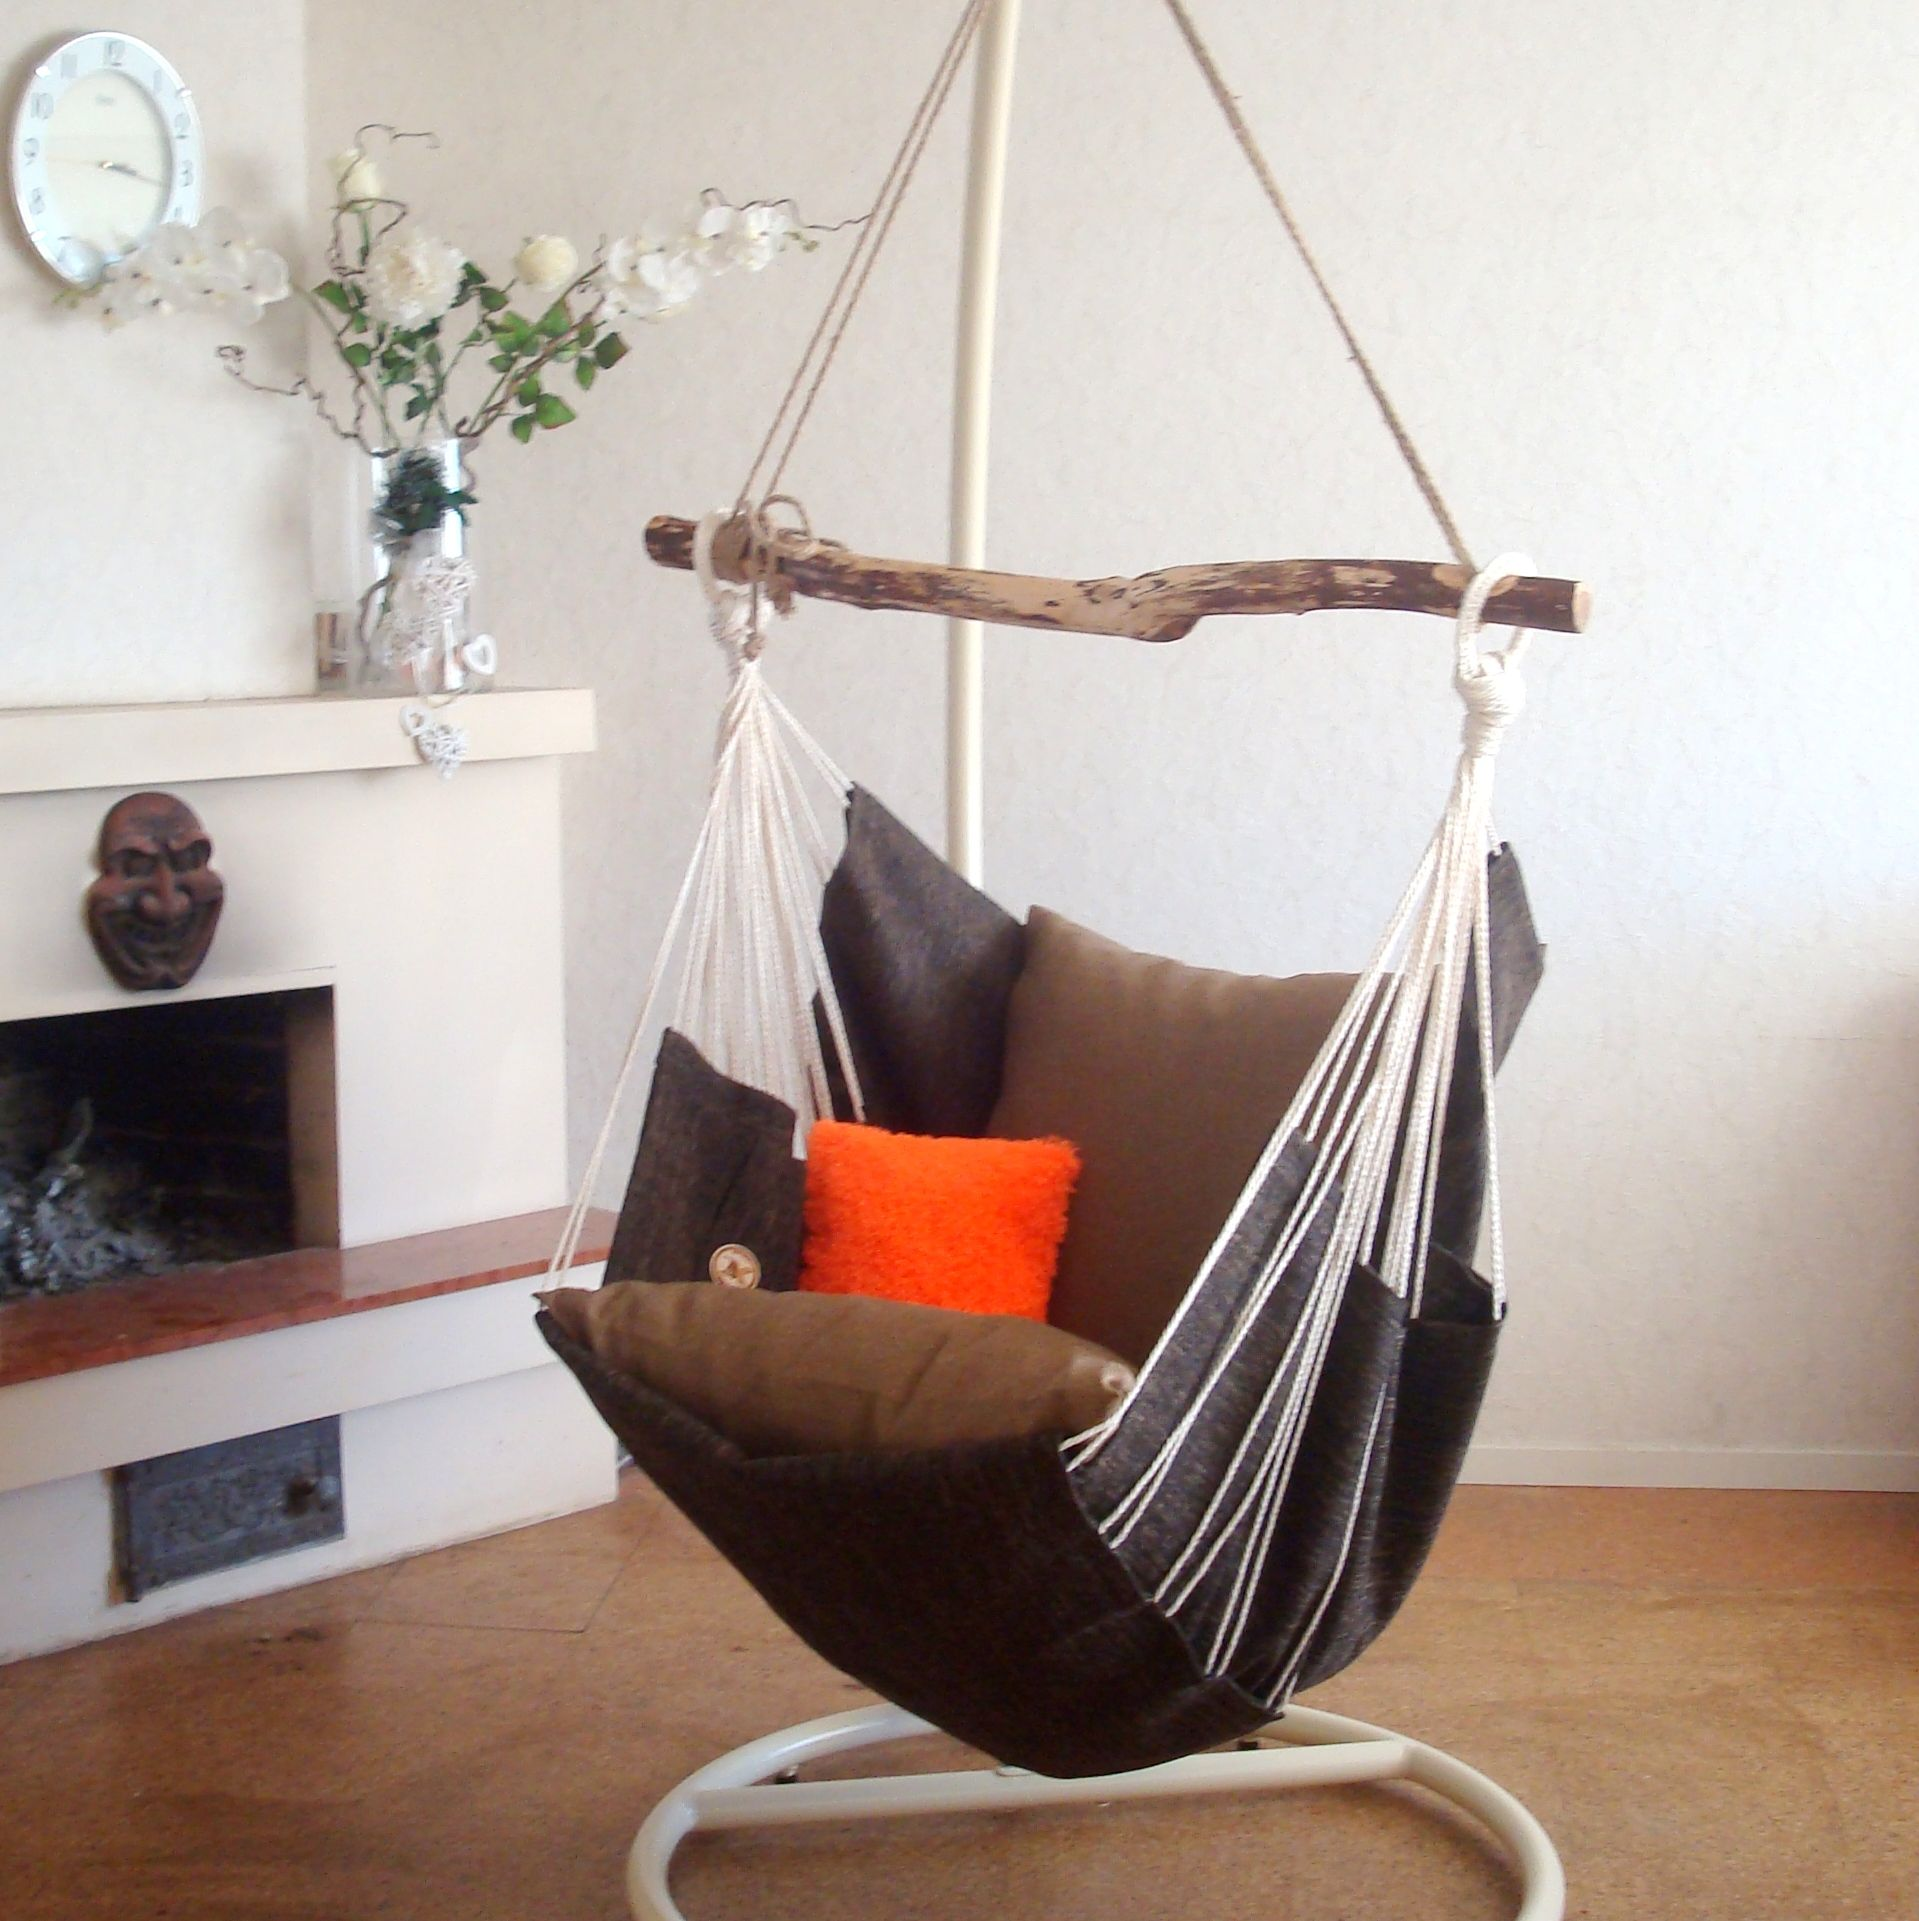 Hammock Chairs bring style and relaxation to